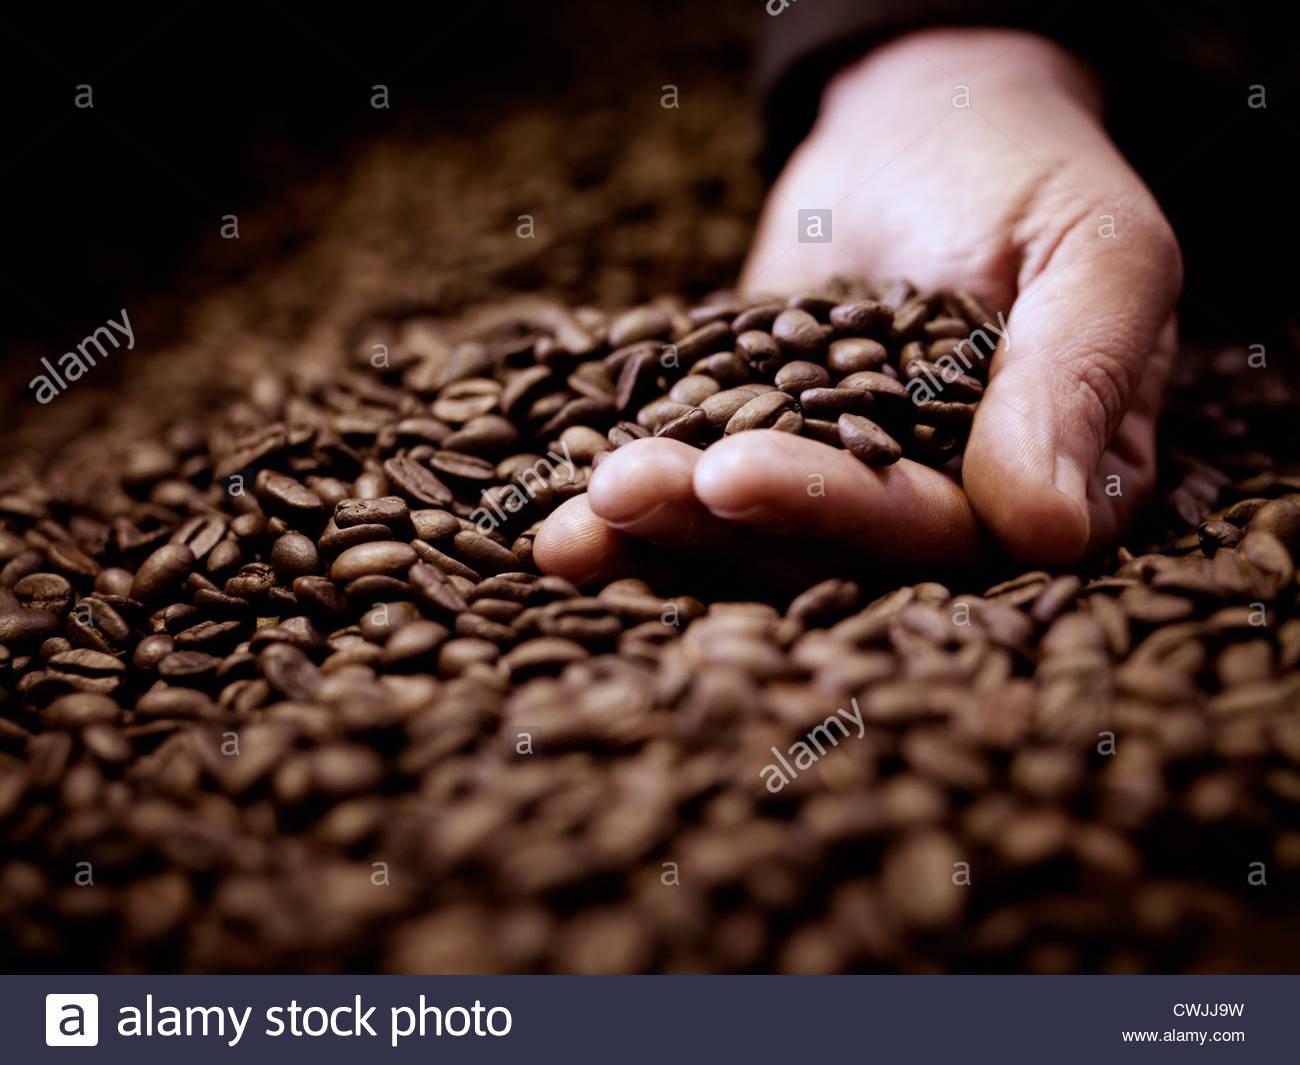 Close up of hand cupping coffee beans - Stock Image